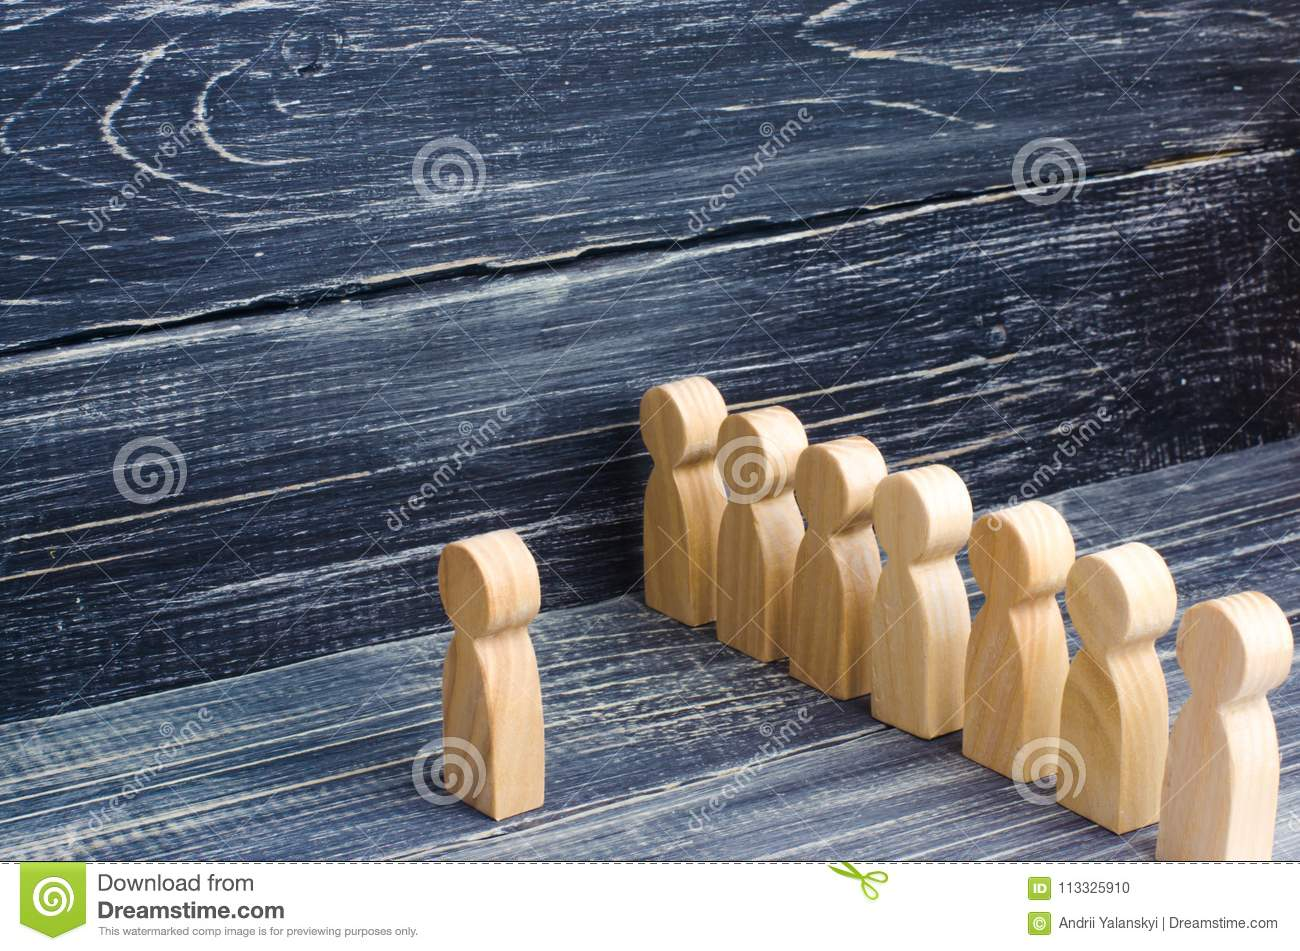 People stand in line at the briefing and wait for orders. Wooden figures of people are waiting in line. Concept of business, army,